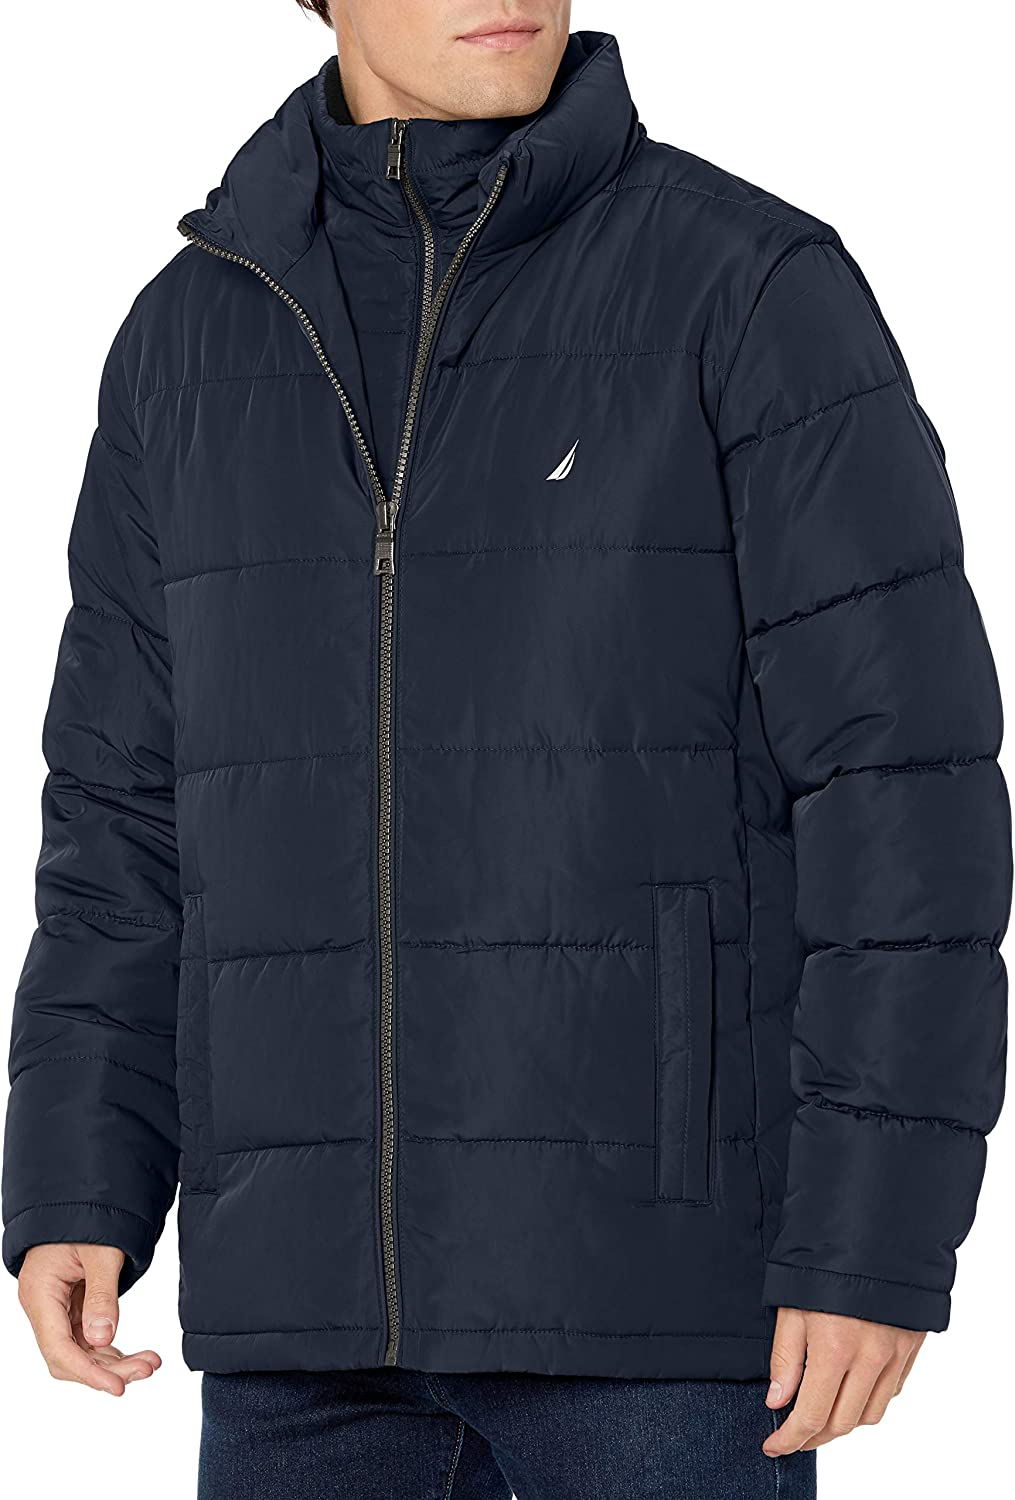 Nautica Men's Poly with OFFicial site Bib 70% OFF Outlet Puffer